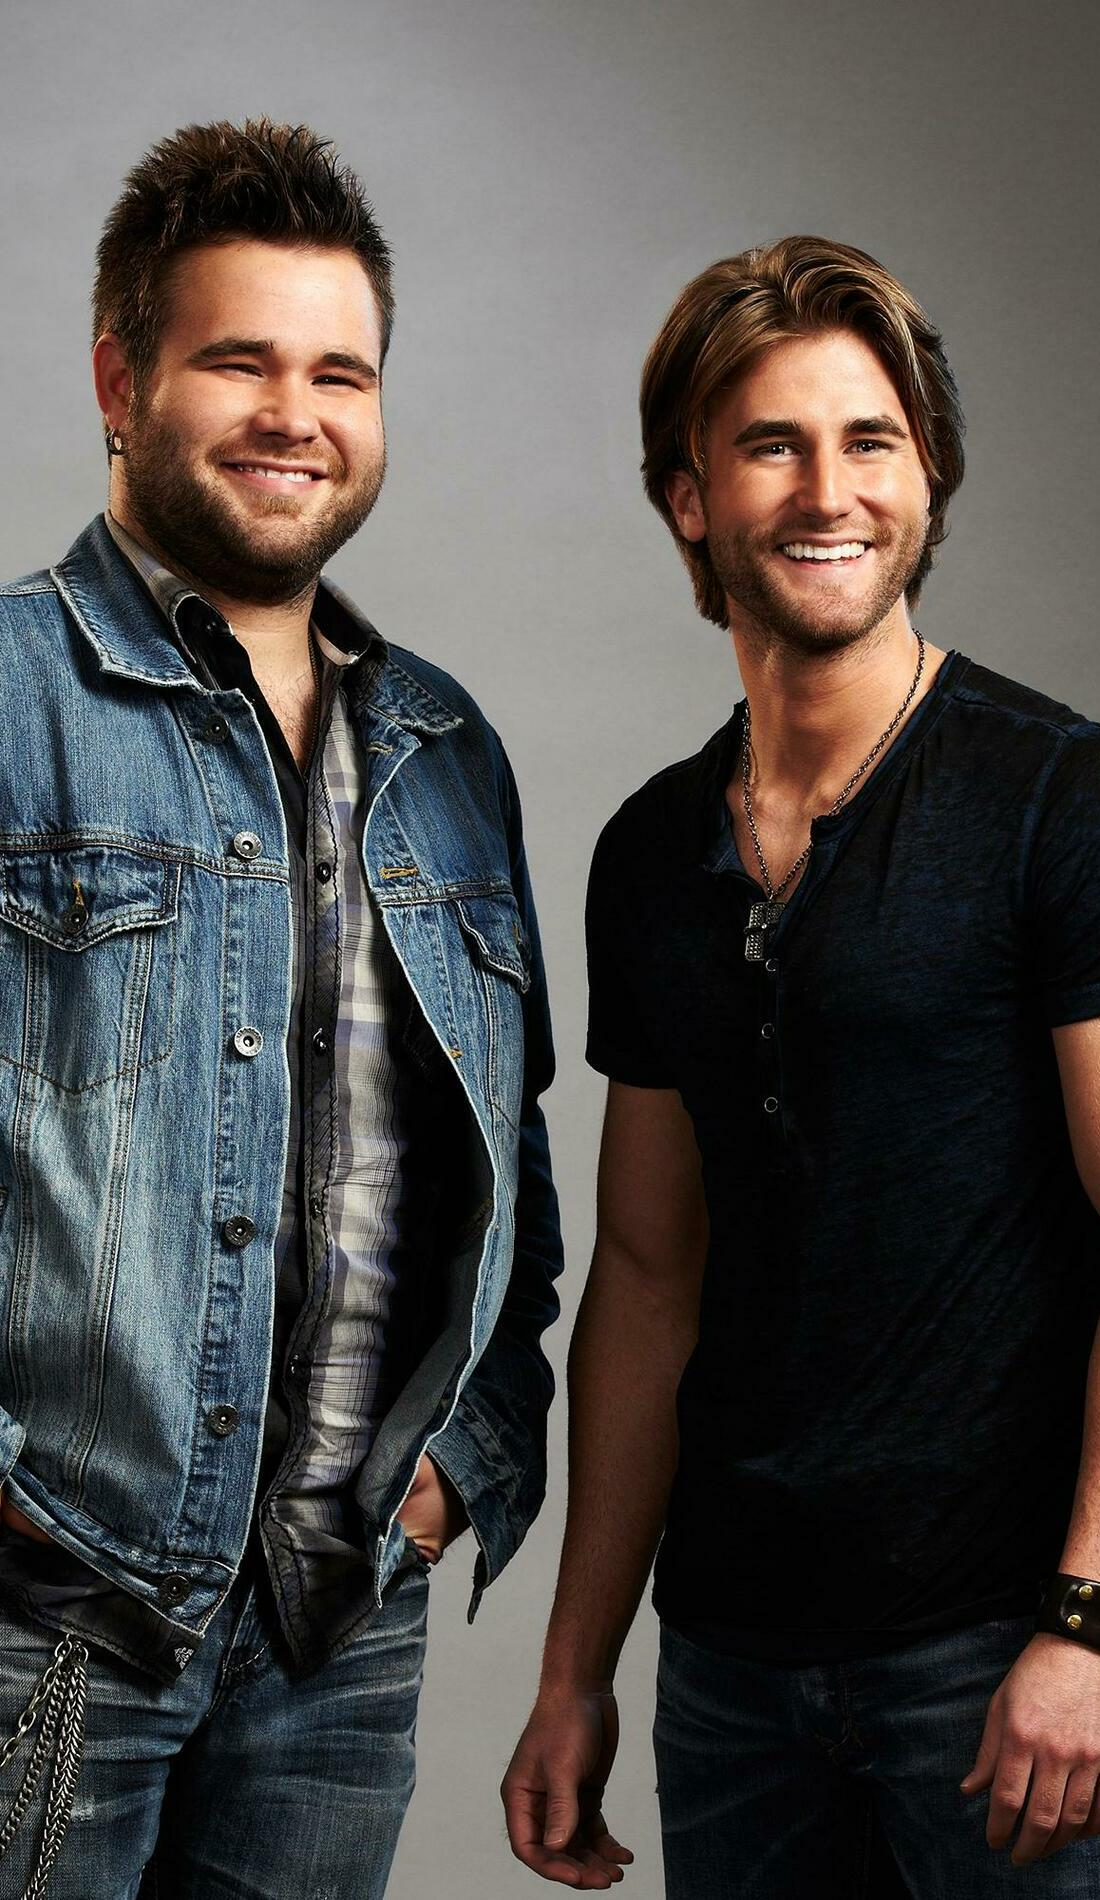 A The Swon Brothers live event